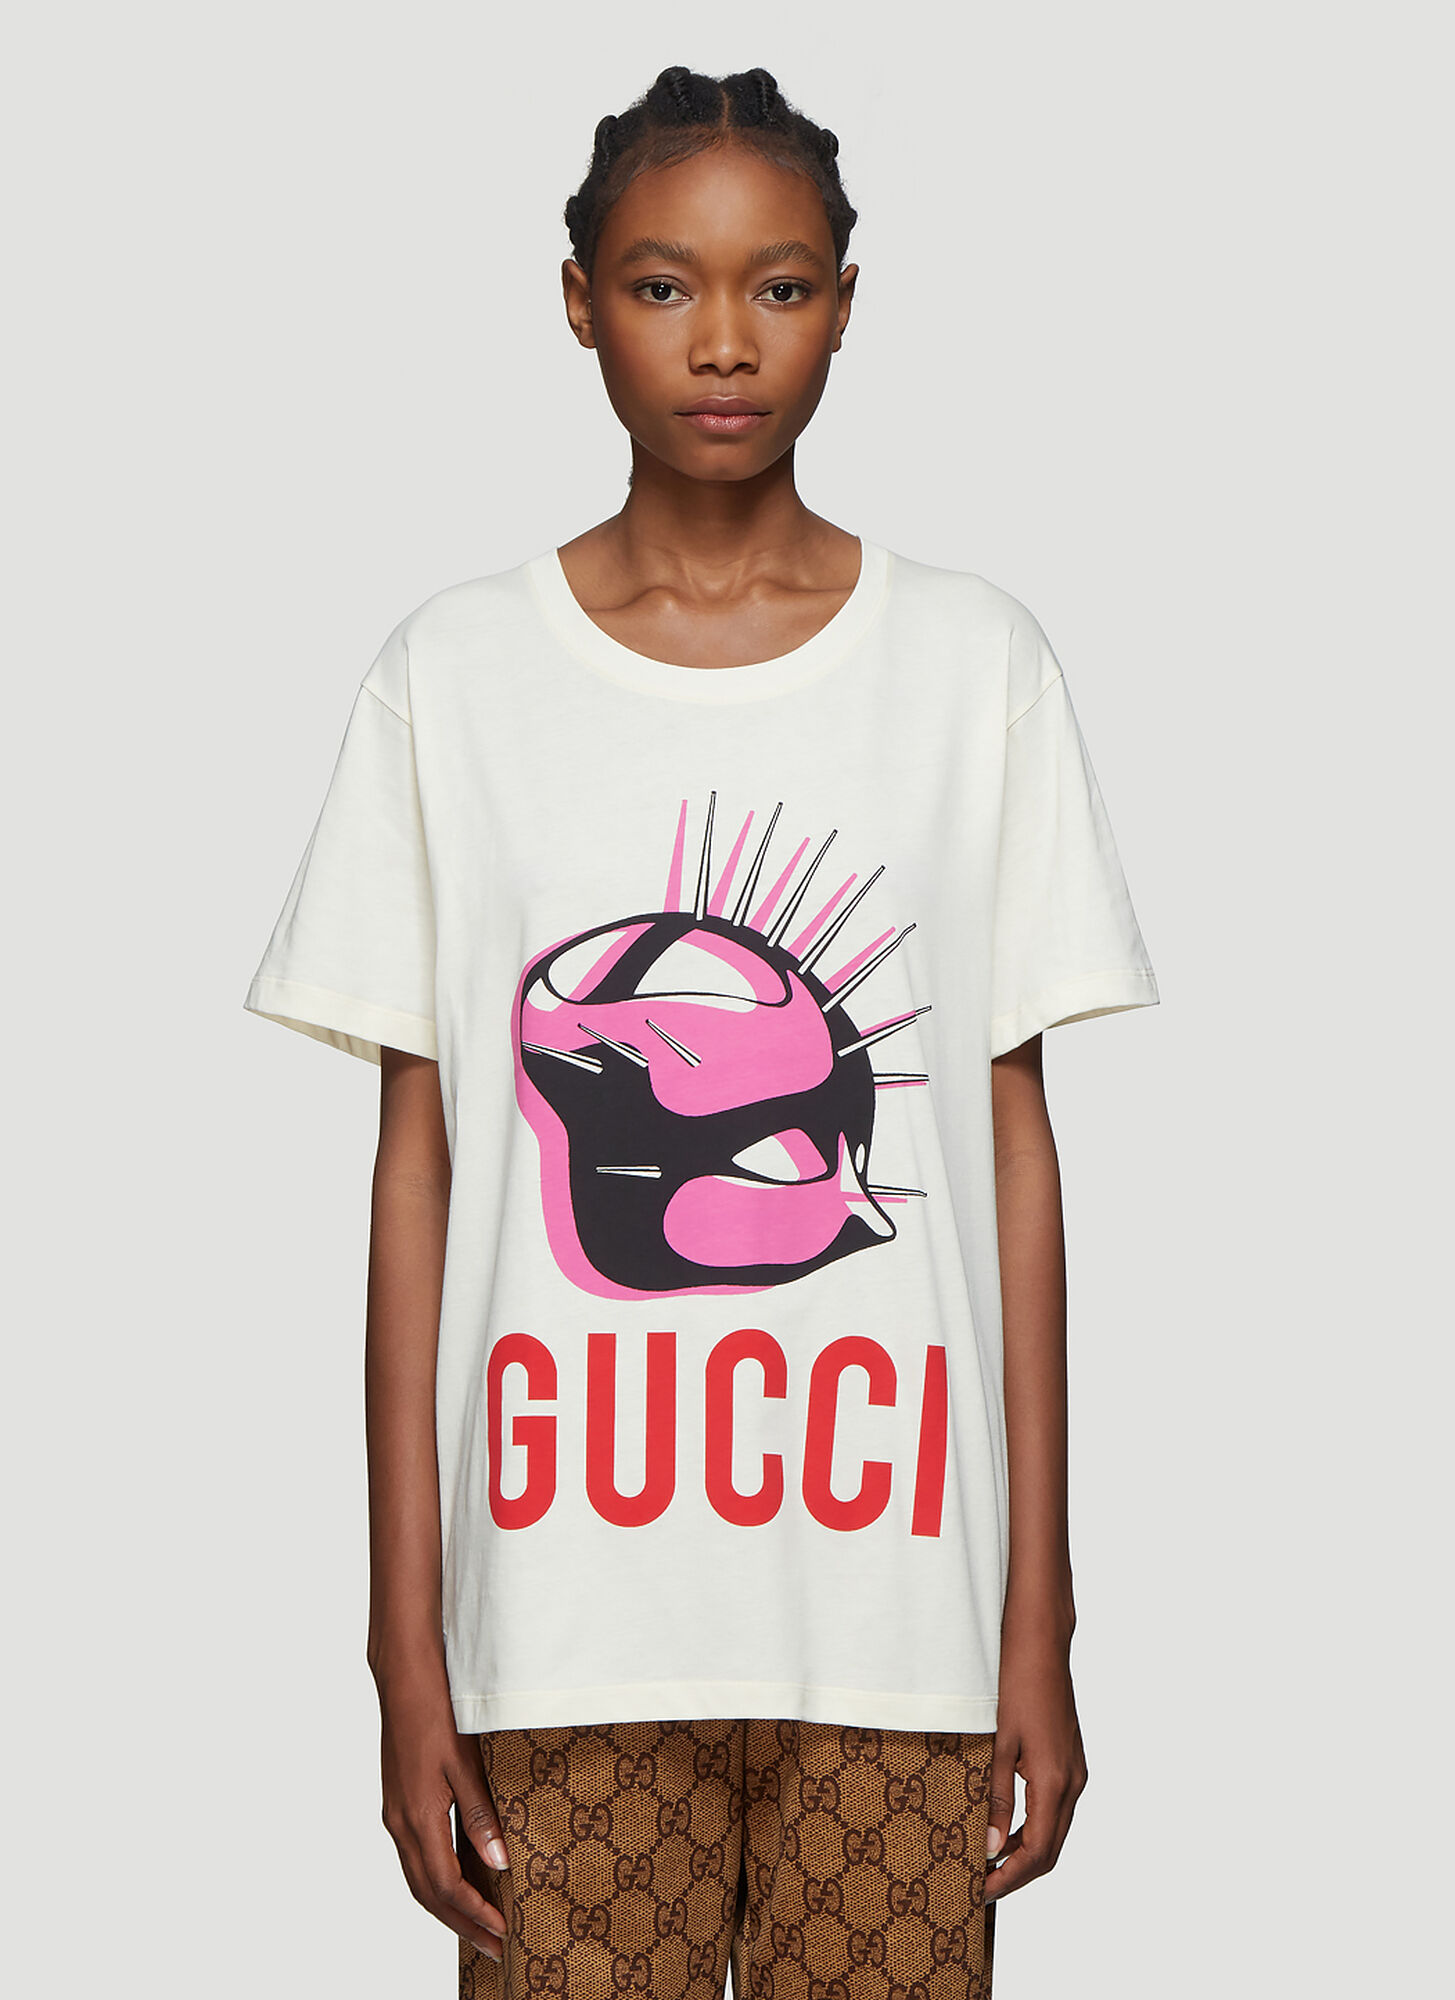 Gucci Mask T-Shirt in White